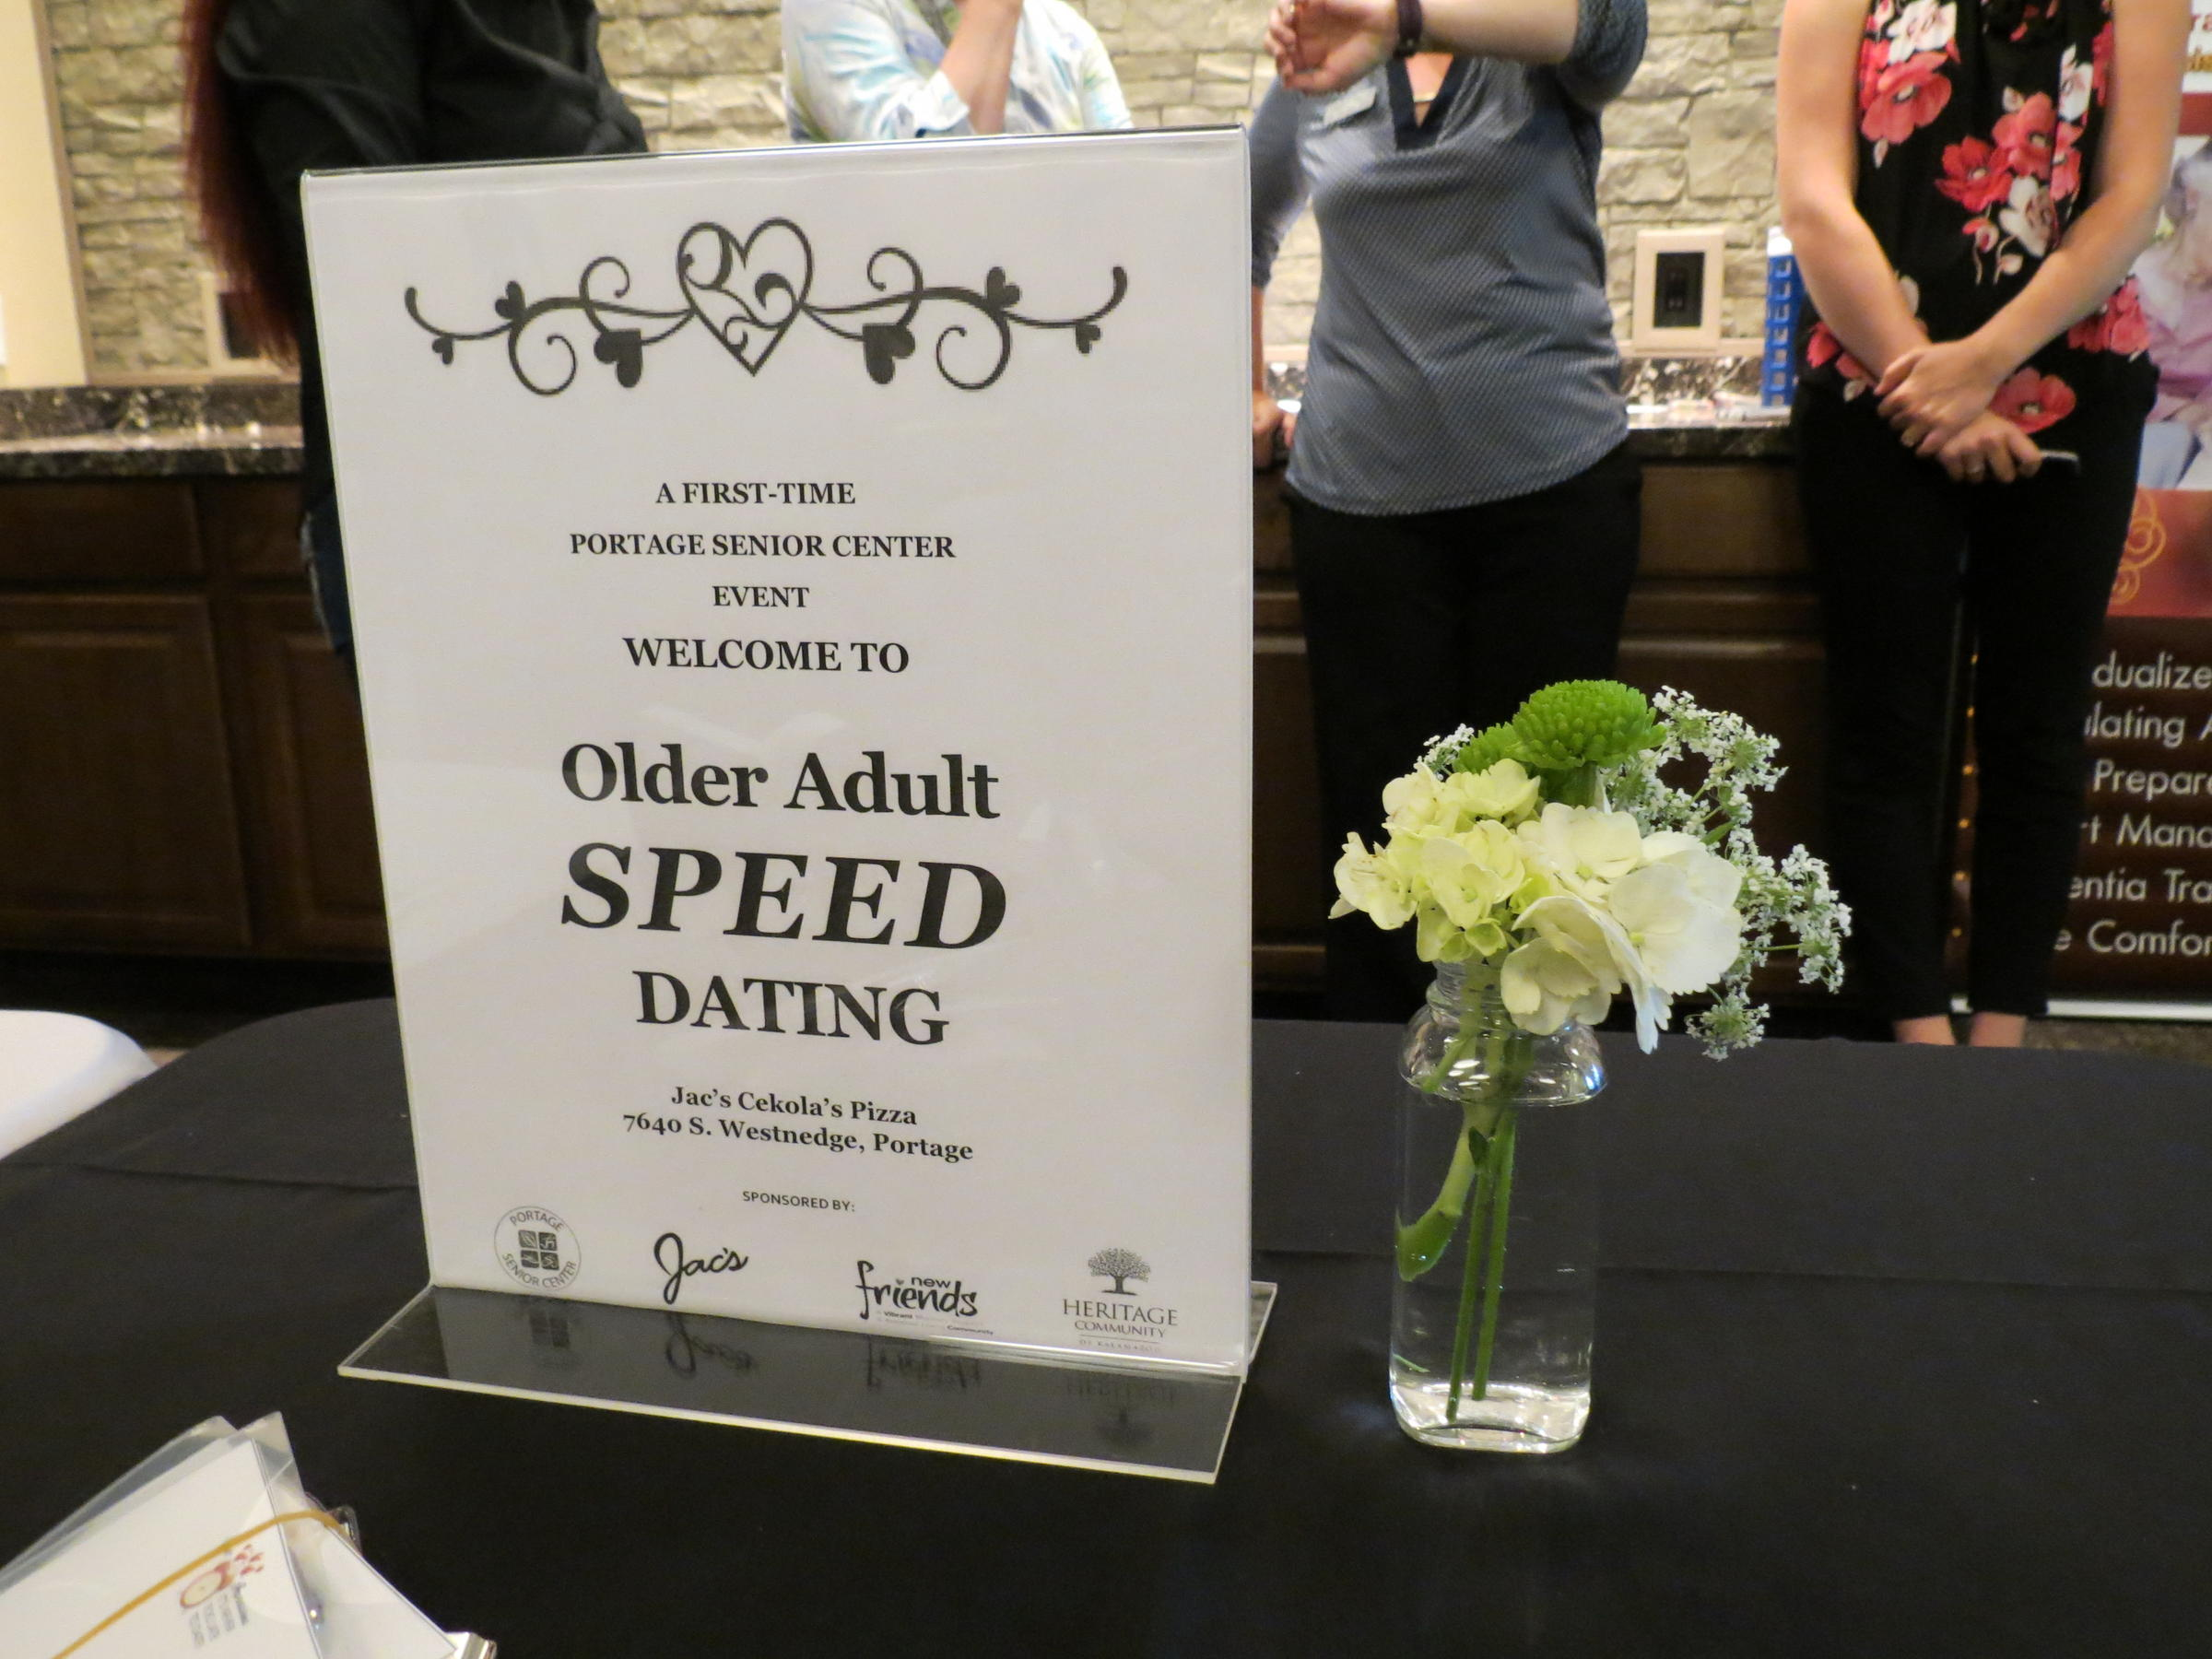 Speed dating pittsburgh over 50